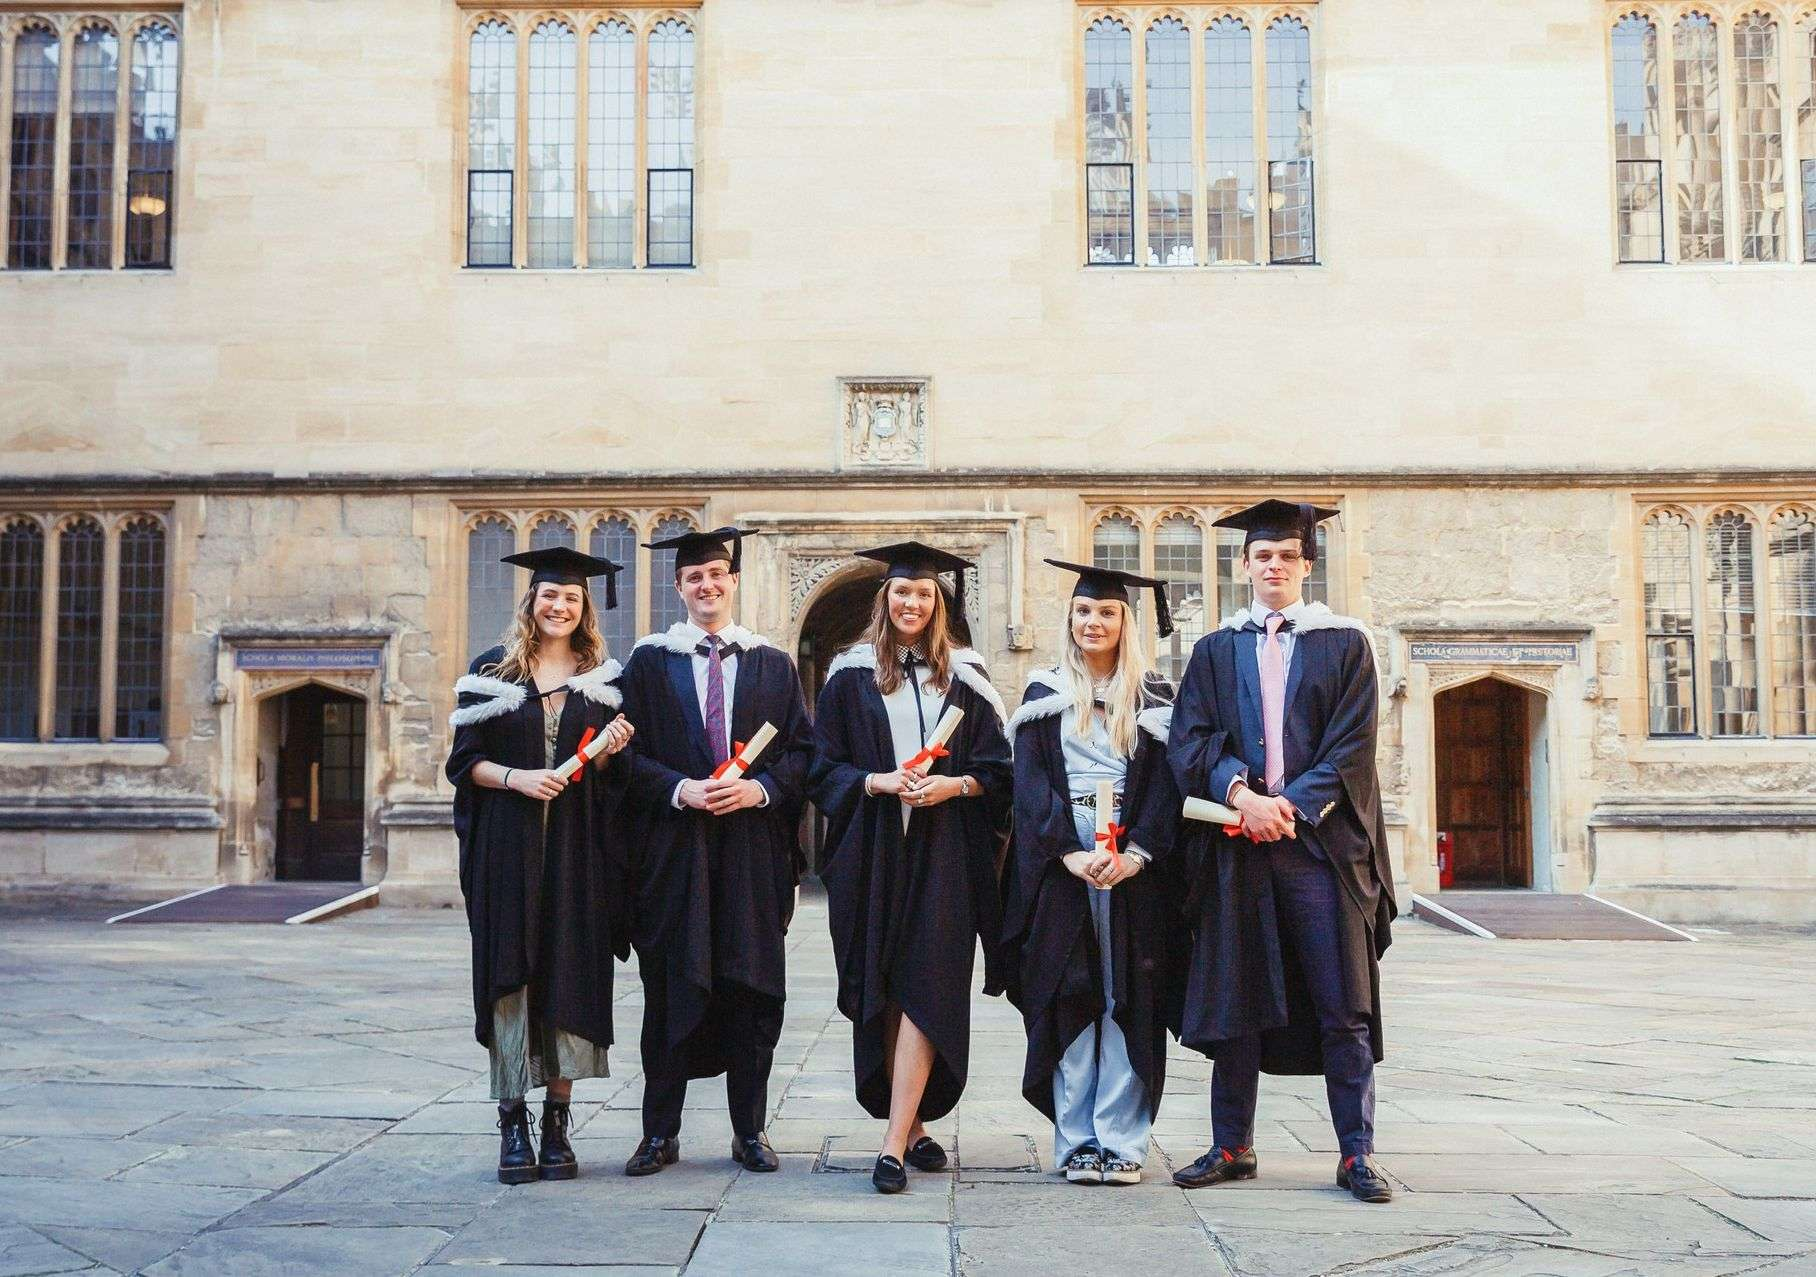 Group of Graduates in Gowns